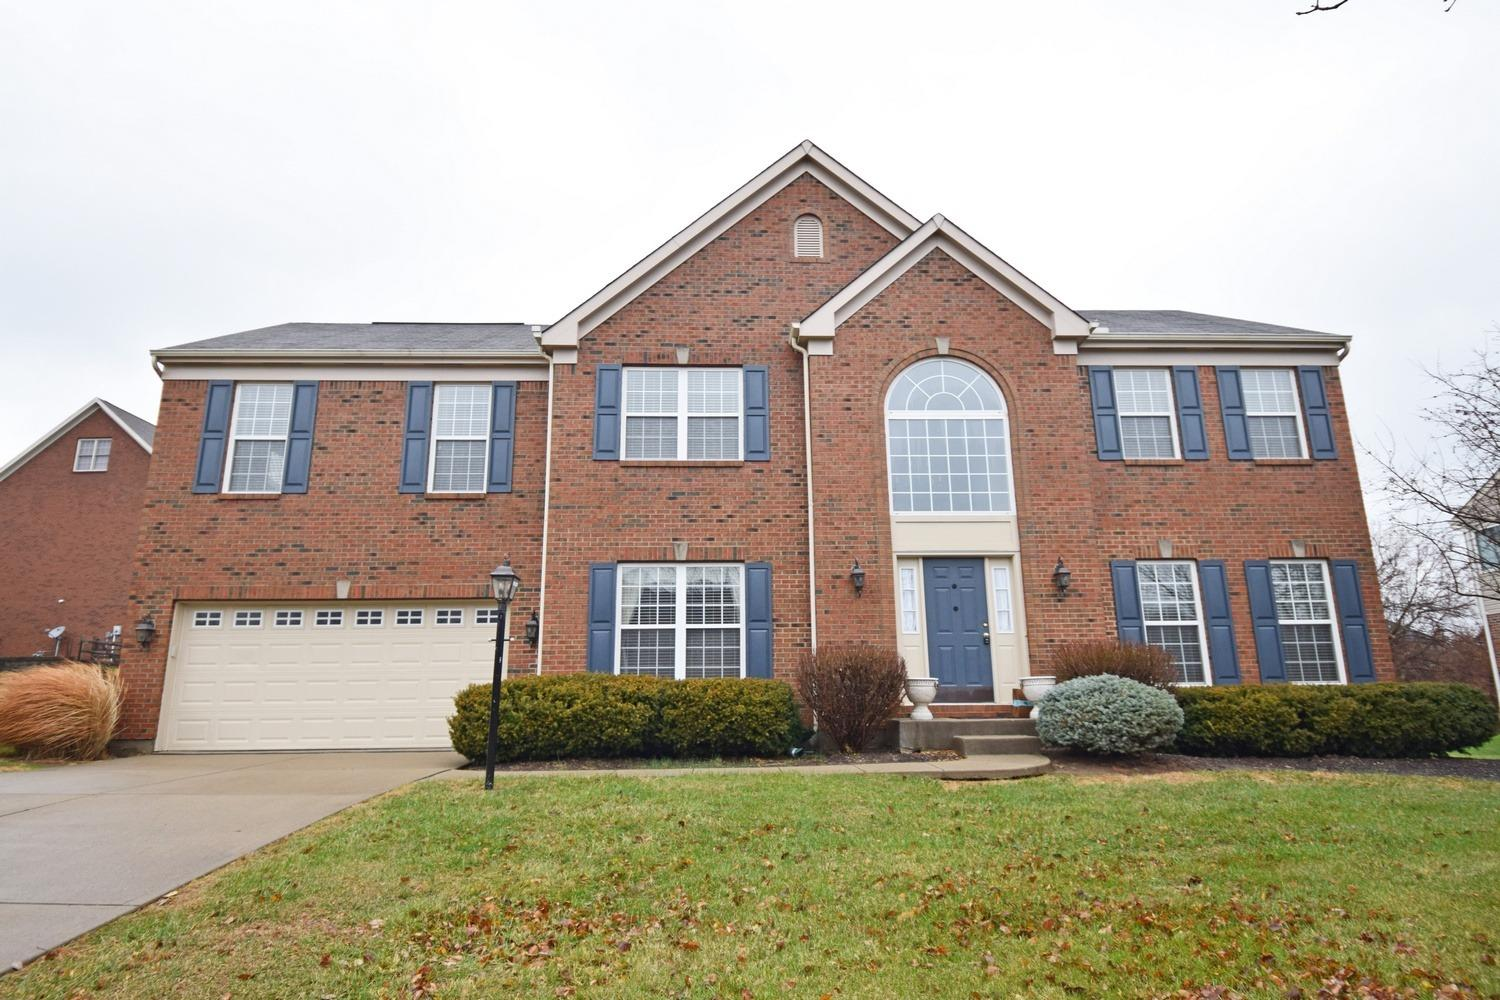 Property for sale at 8377 Ashmont Way, Deerfield Twp.,  Ohio 45040